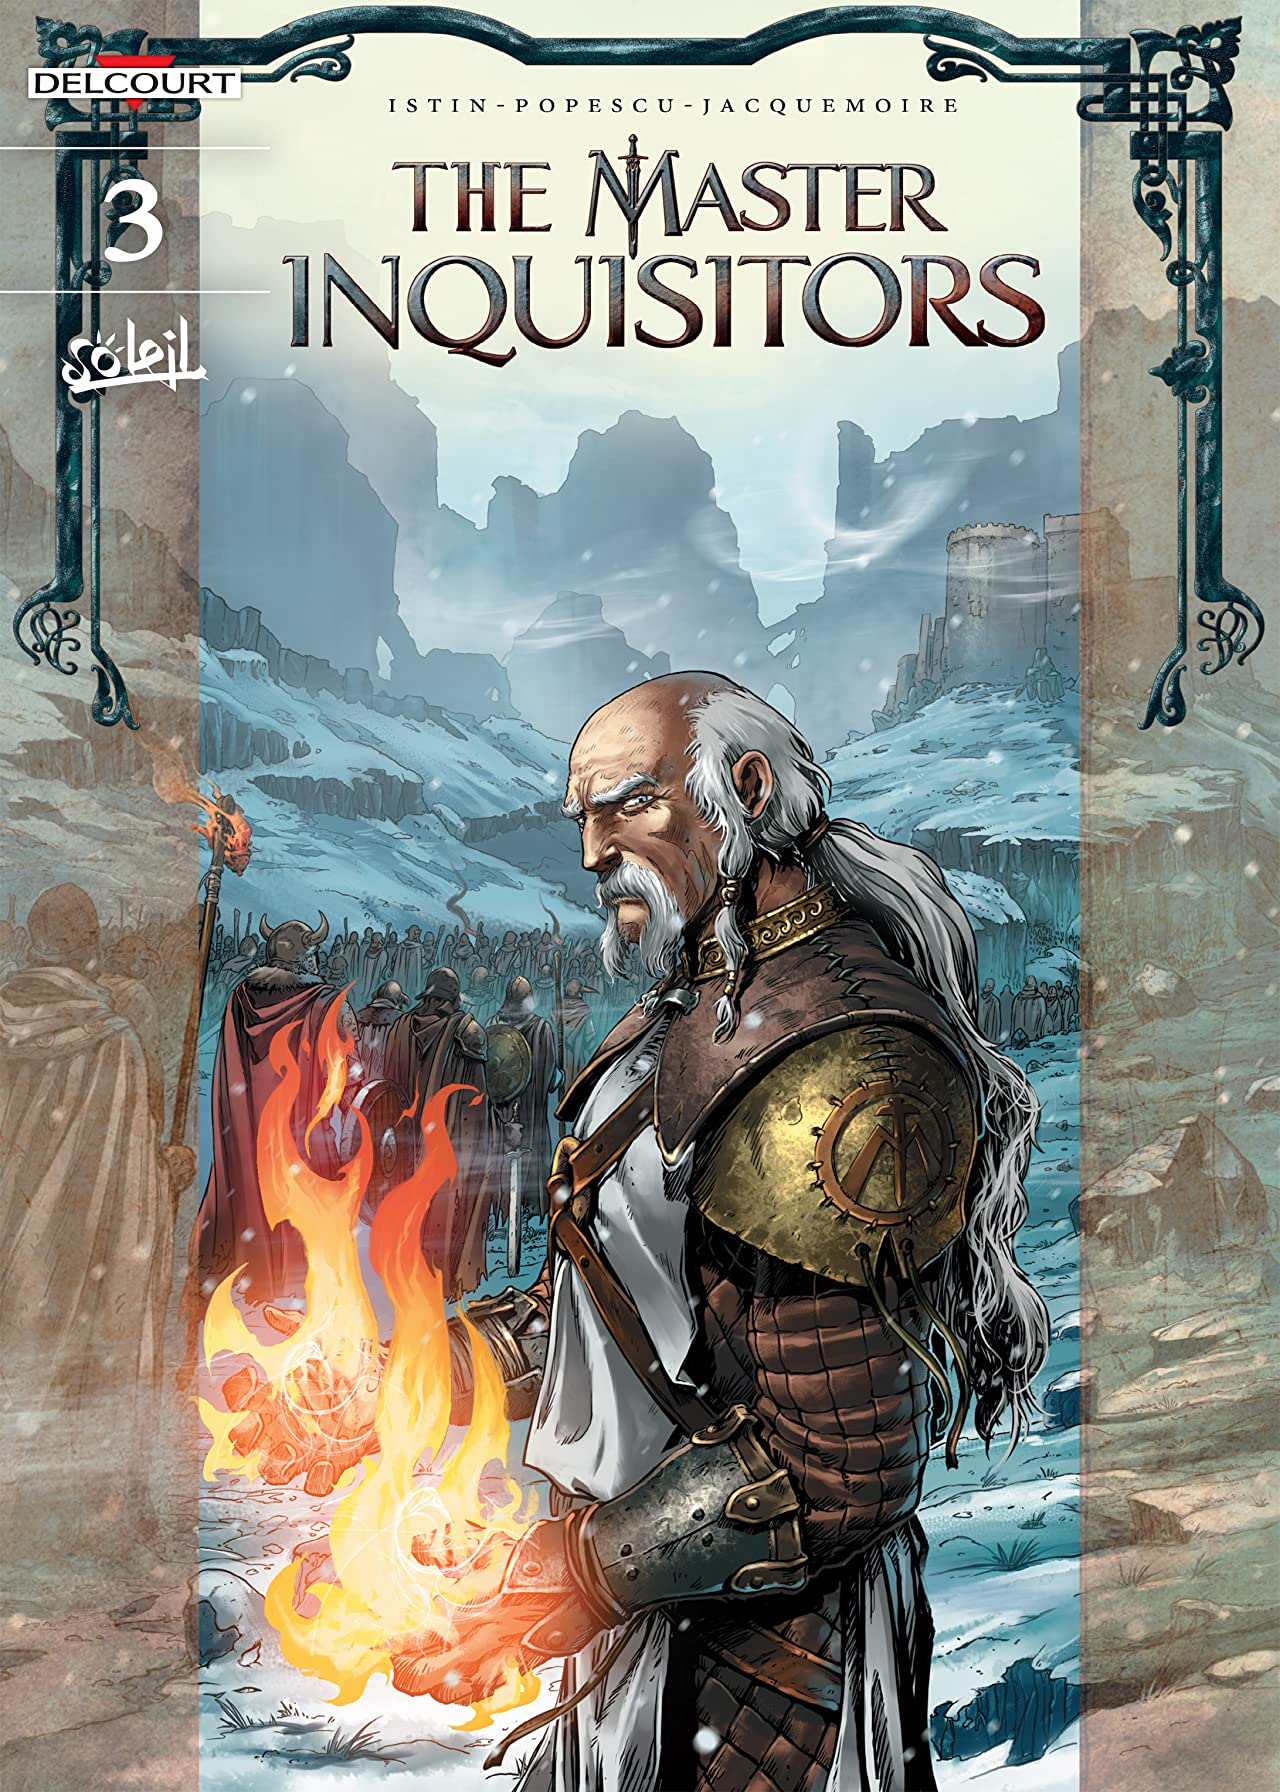 The Master Inquisitors Vol. 3: Nikolaï